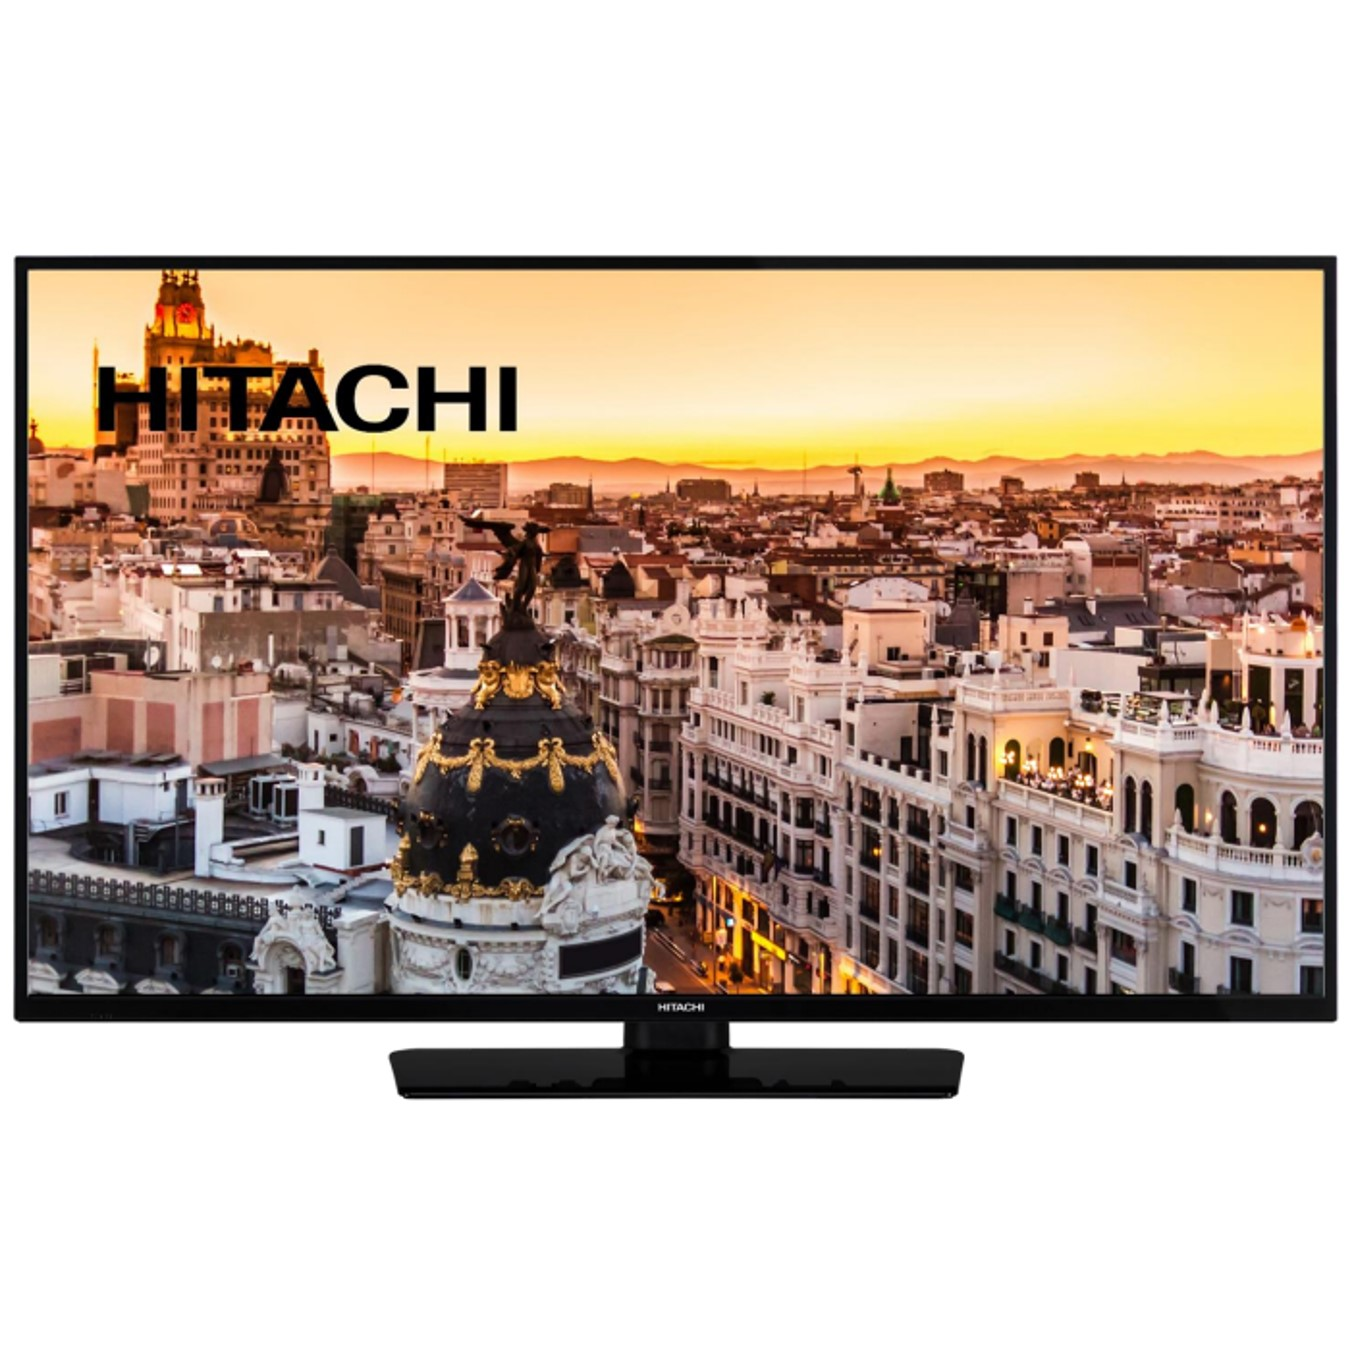 Tv Hitachi 32 Led Hd/ 32he1000/ 2 Hdmi/ 1 Usb/ Modo Hotel/ A+/ 200 Bpi/ Tdt2/ Satelite 0.0